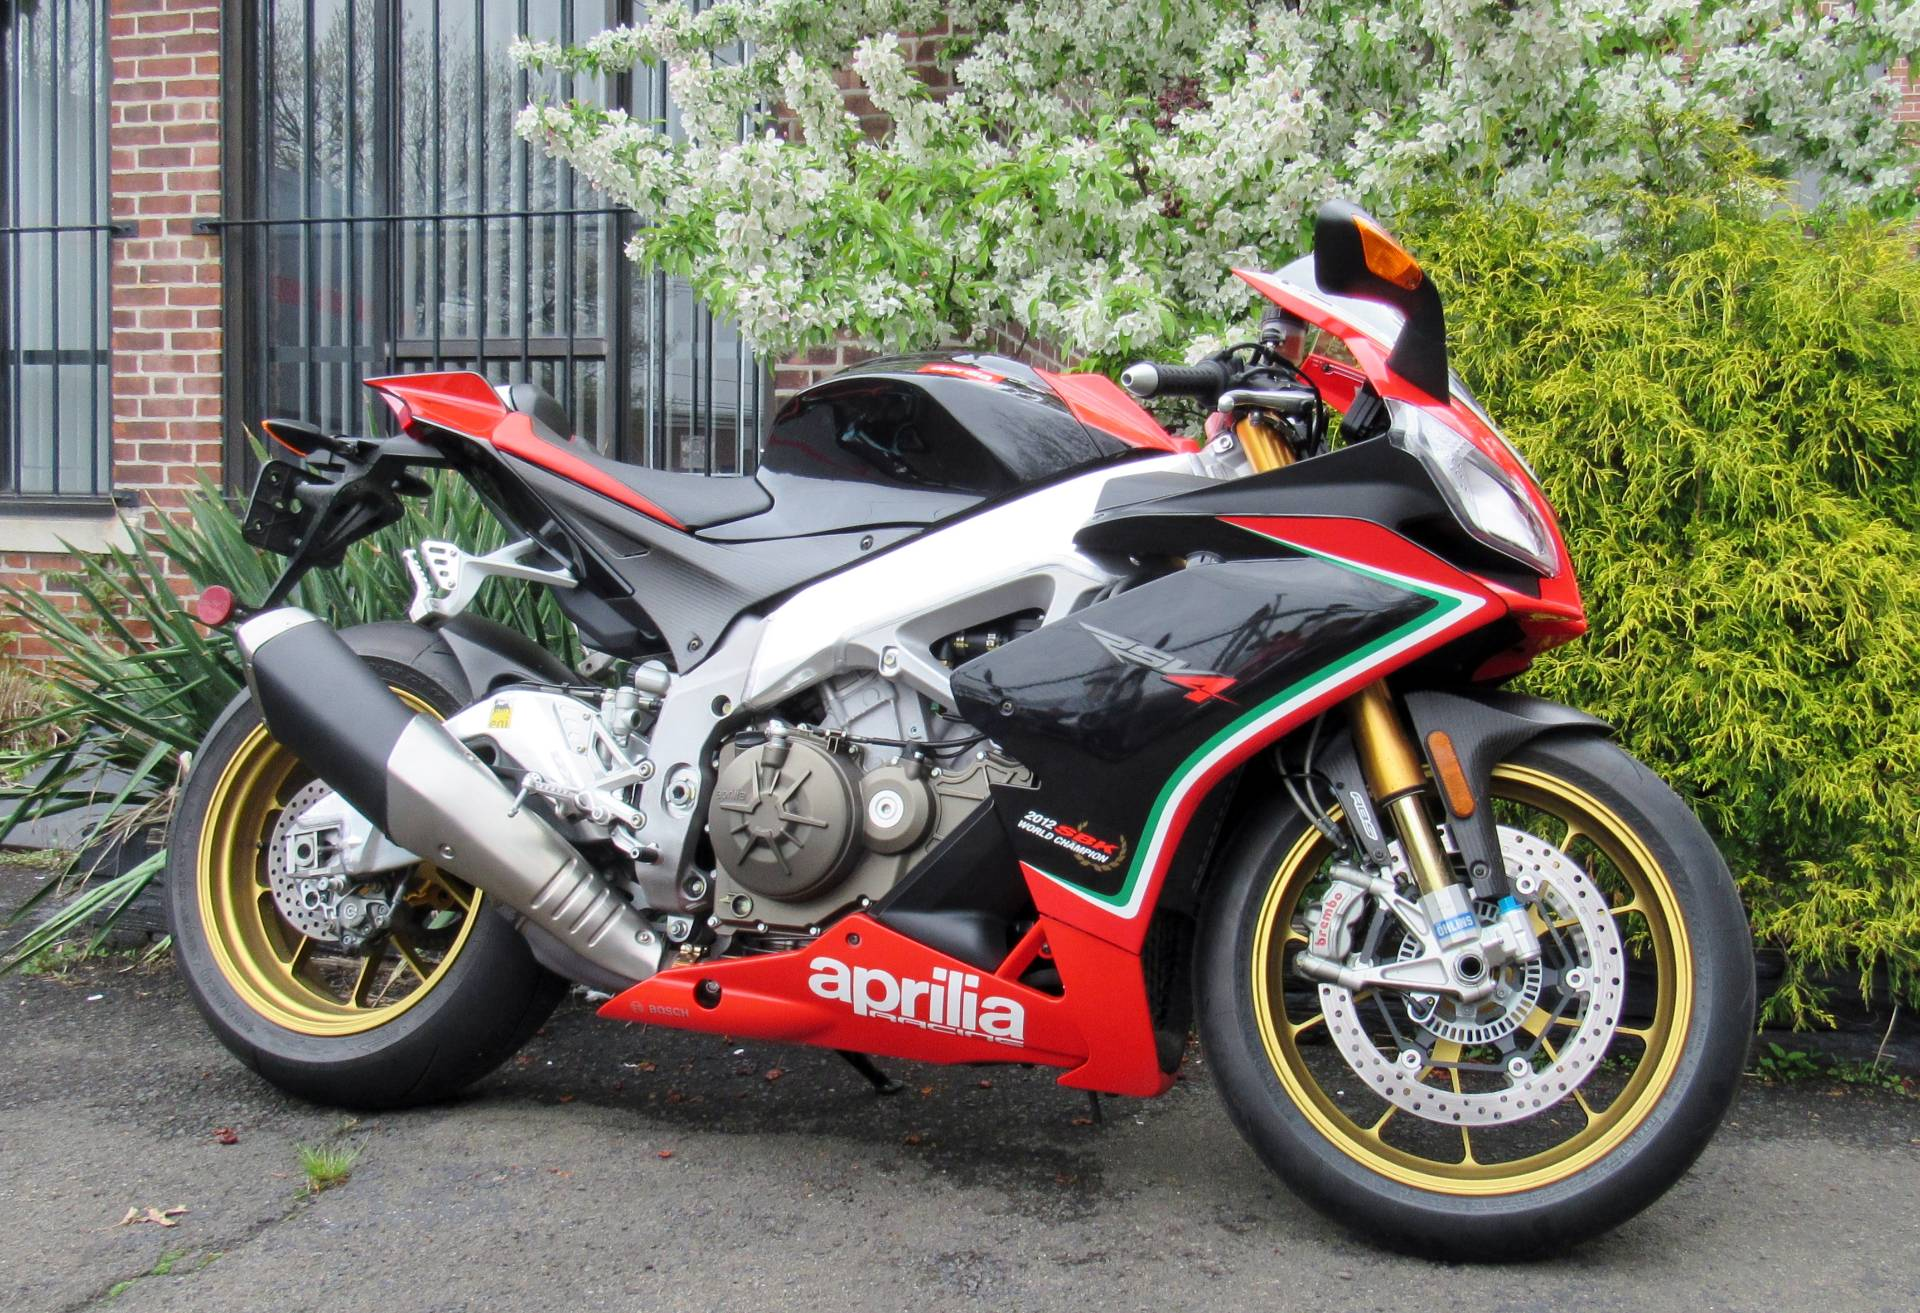 Used 2013 Aprilia Rsv4 Factory Aprc Abs Motorcycles In New Haven Ct